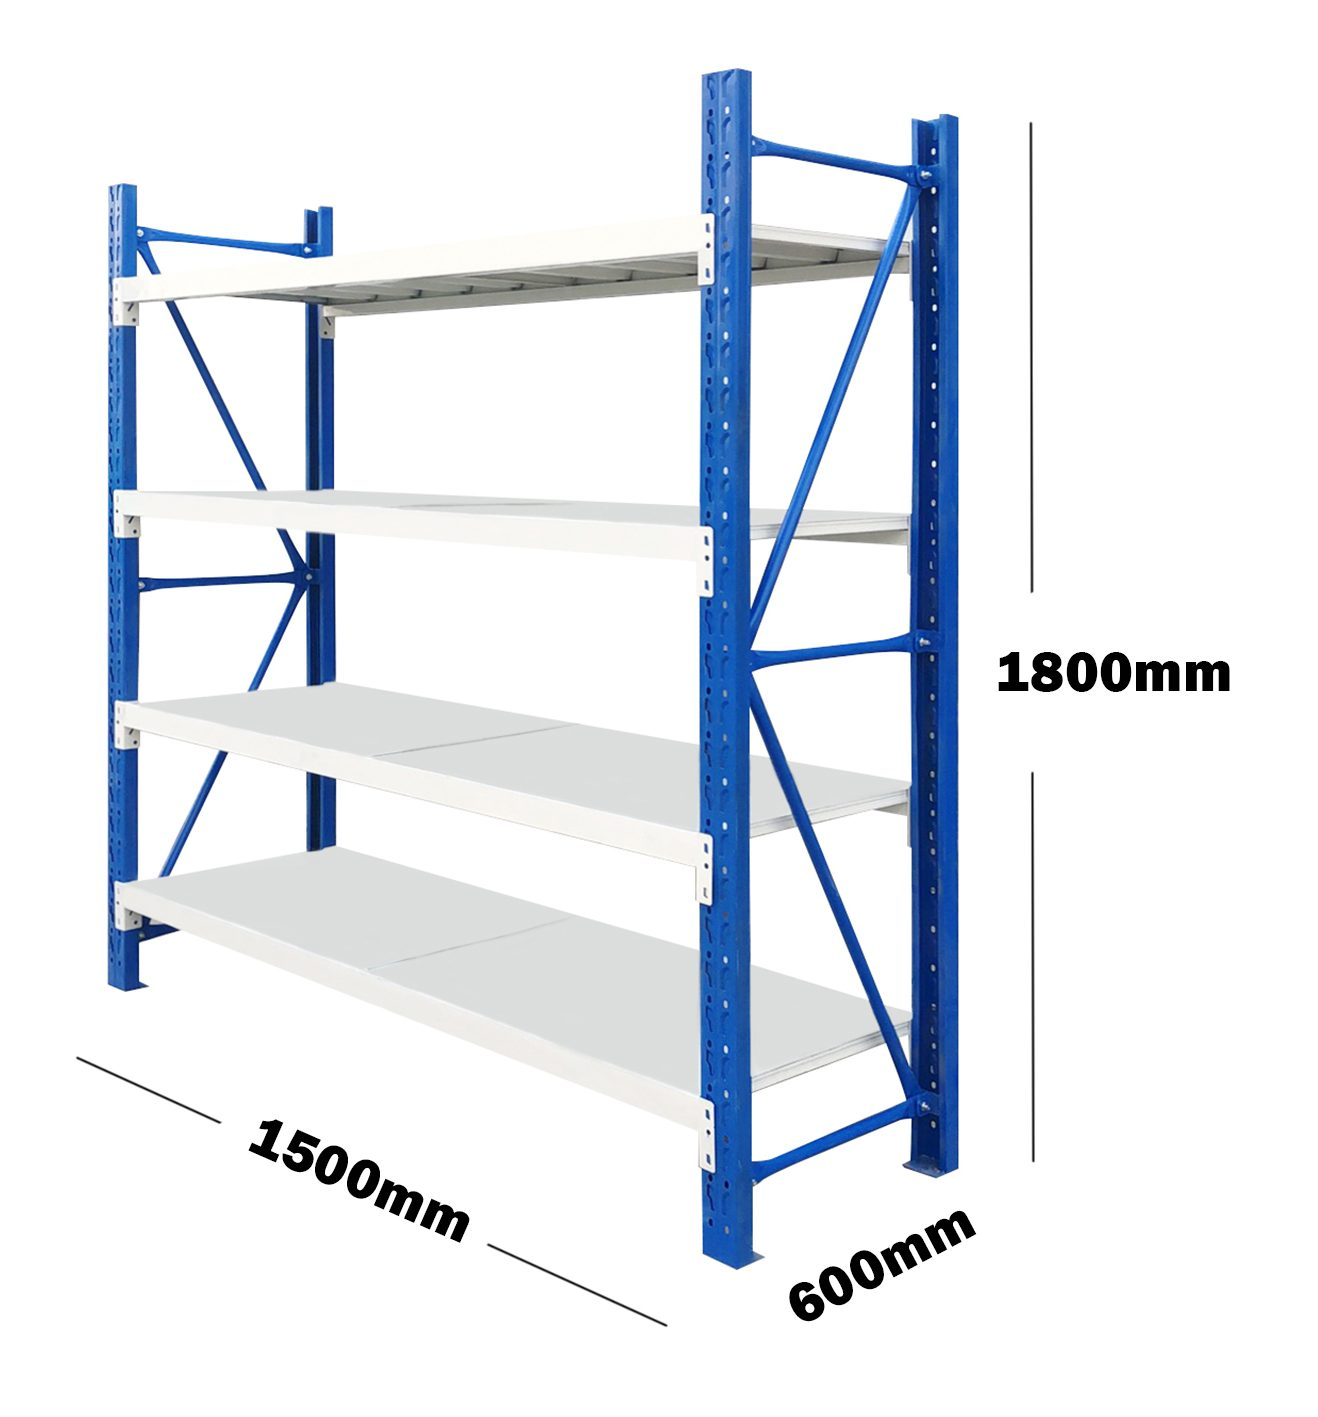 1.5M(L) x 1.8M(H) x 0.6M(D) Shelves Racking Metal Steel Blue & Grey 1518BG